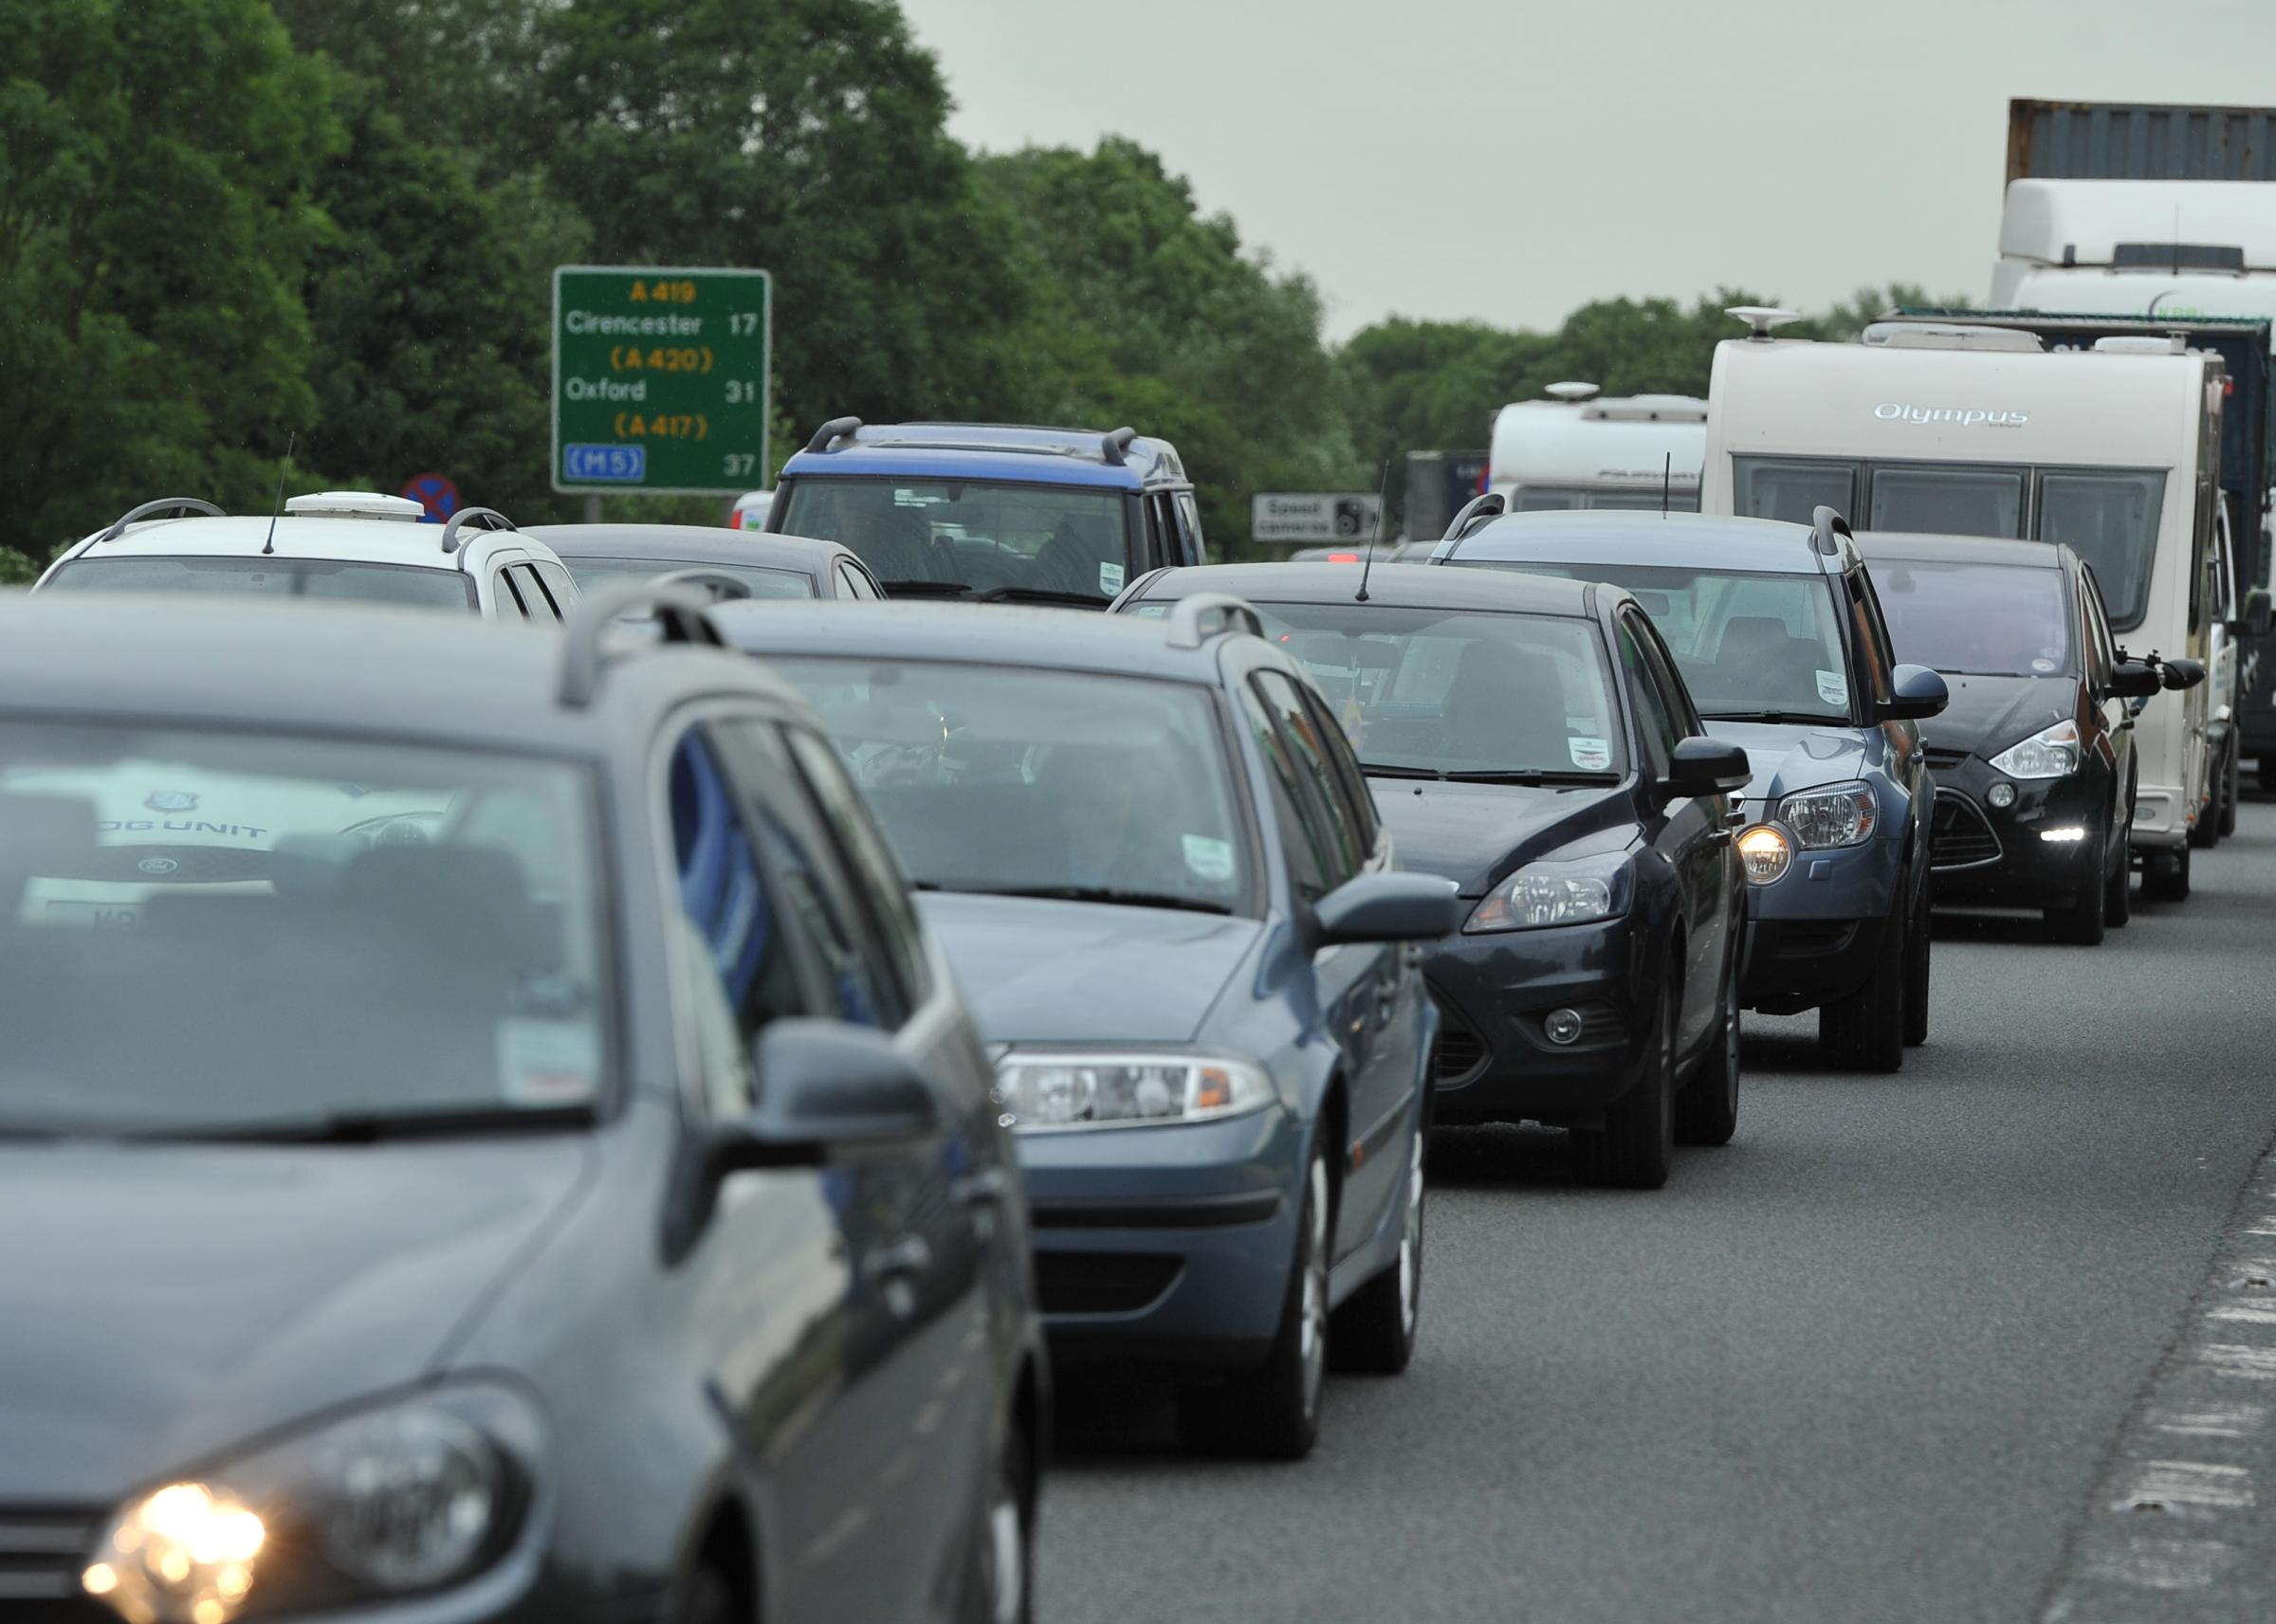 Traffic on A419 Gloucestershire continues to disrupt M5 commuters